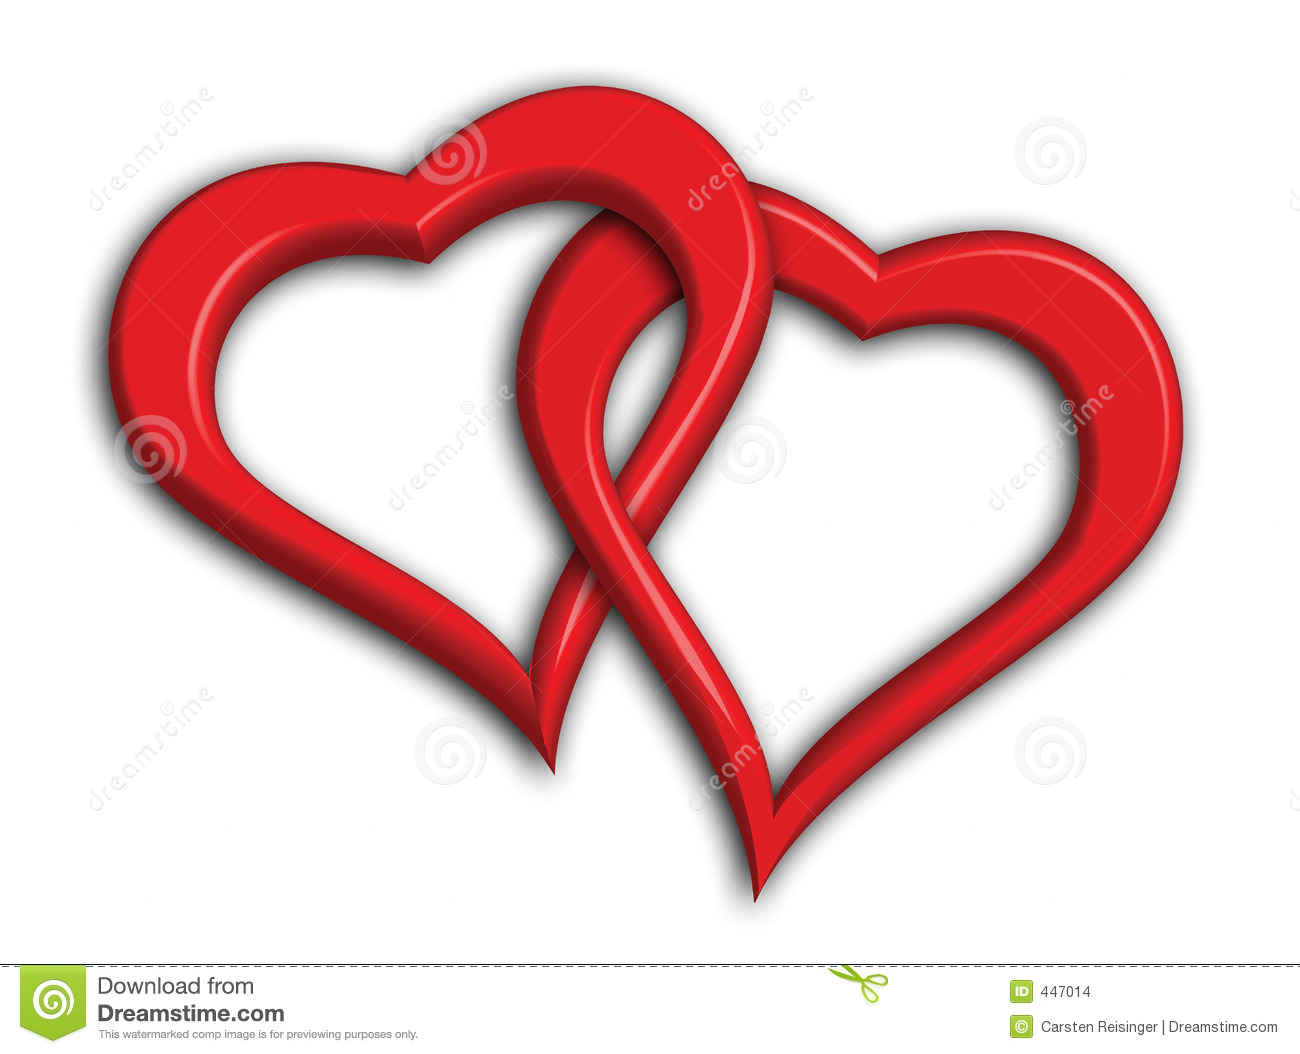 Two Hearts Intertwined Stock Images - Image: 447014